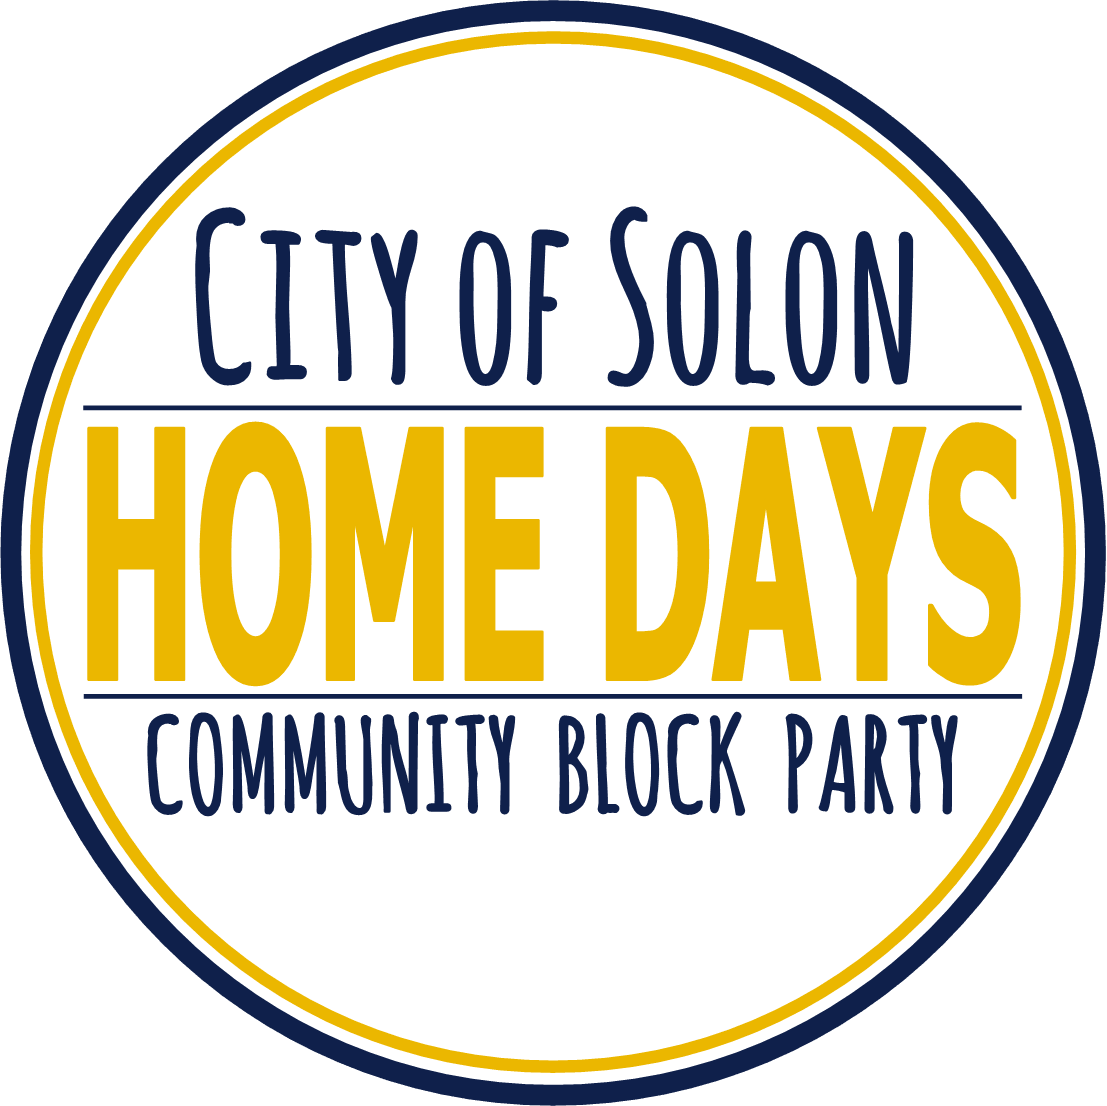 Home Days logo in new city color